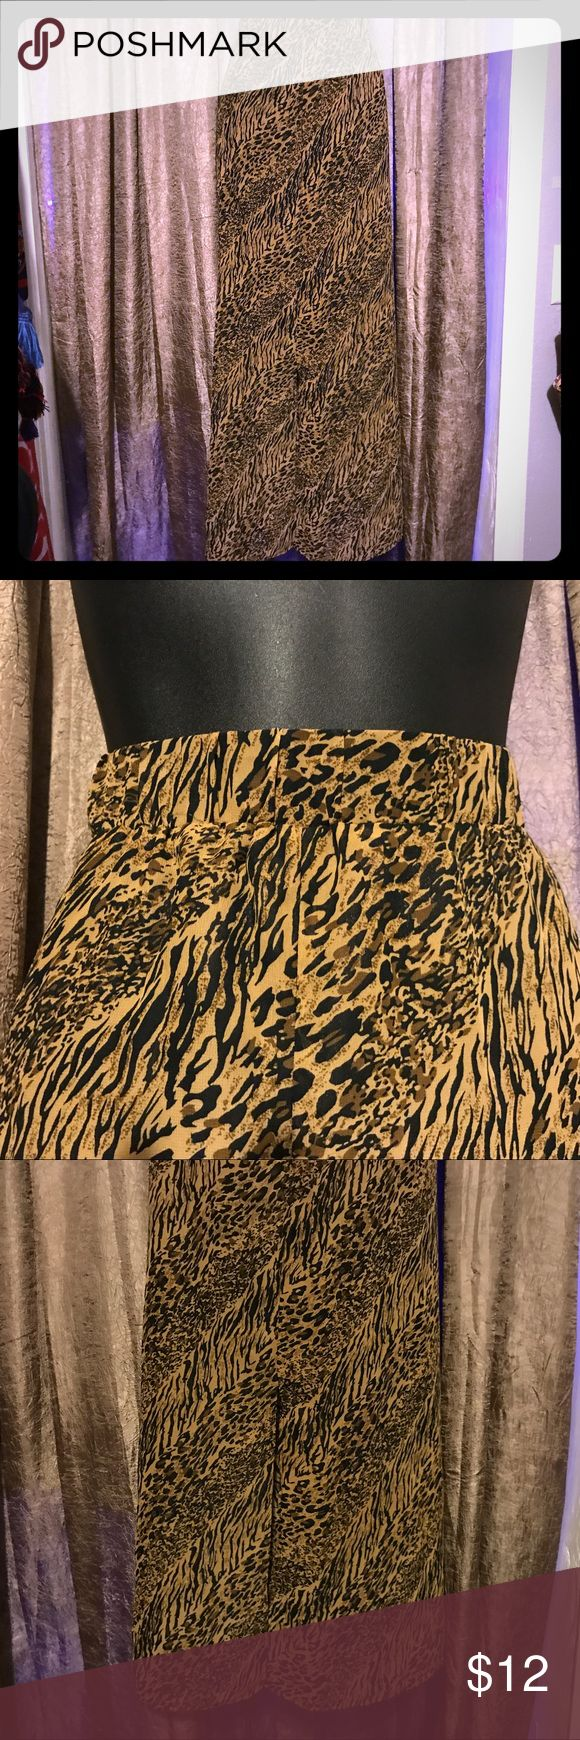 Long cheetah skirt Simple and sweet cheetah print skirt, great with simple brown tee and sandals for on the go. Well loved. The elastic band moves around a bit but once on it stays in place. robert louis Skirts Maxi